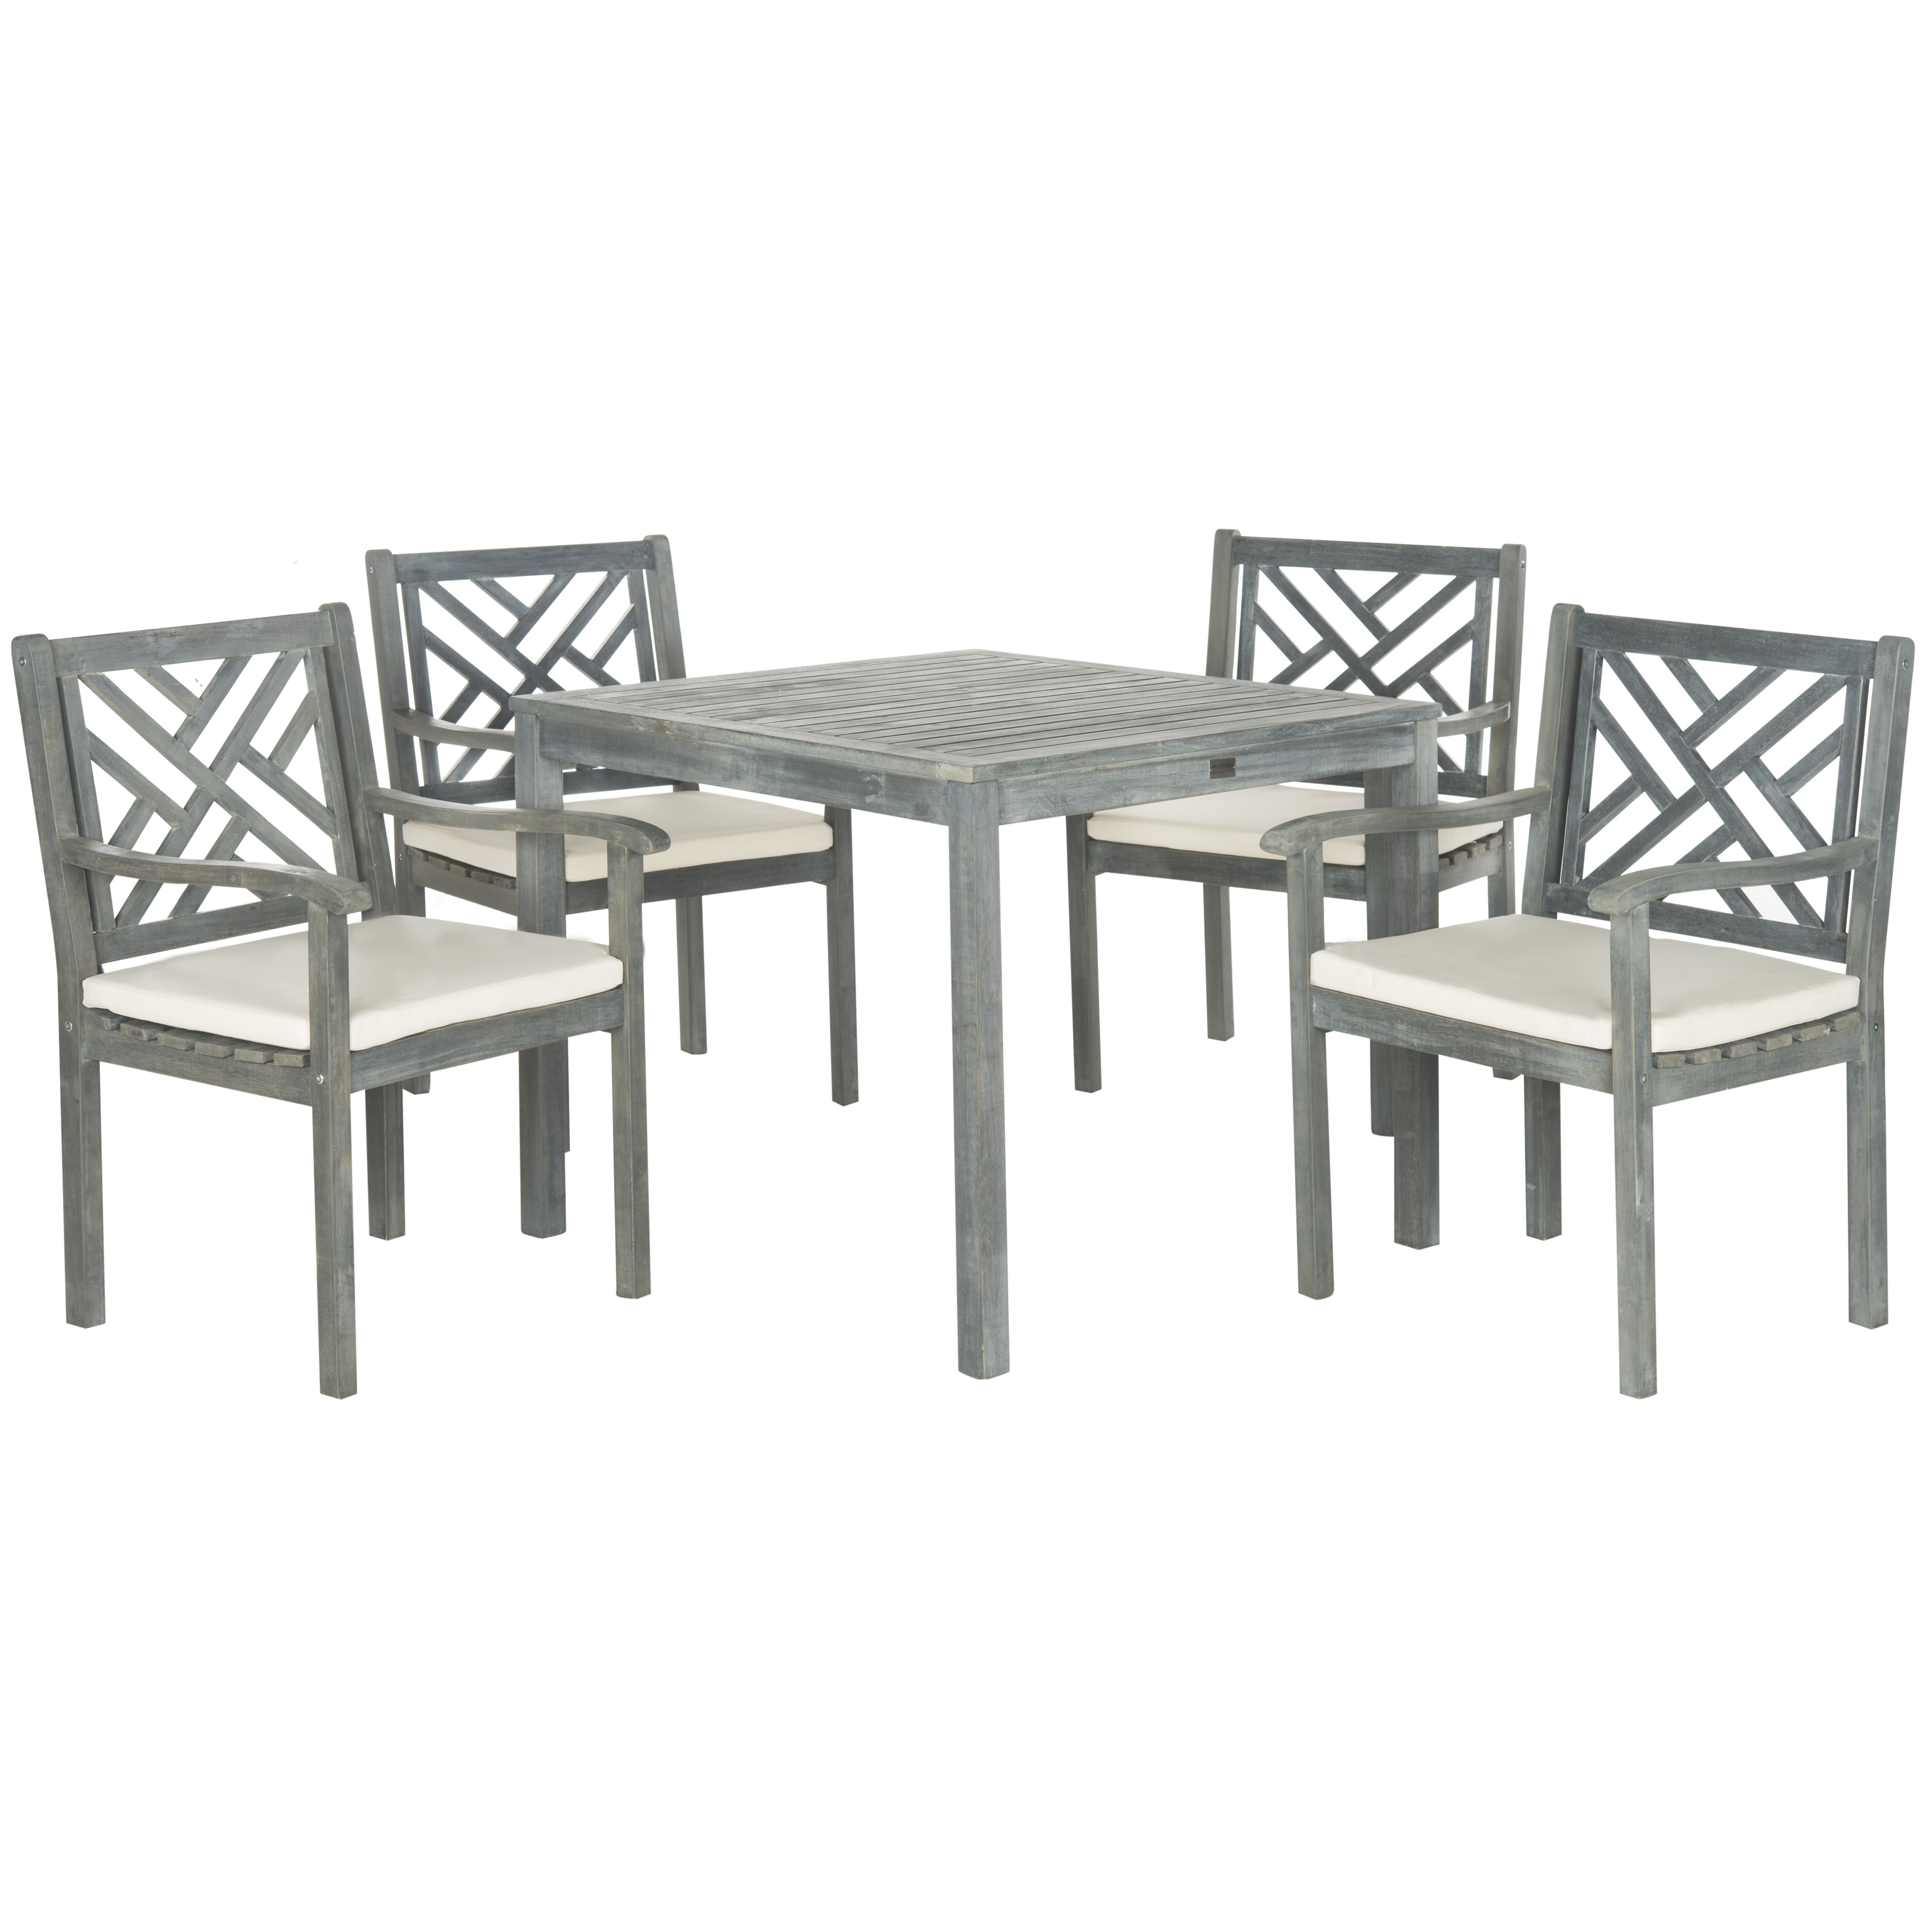 Very Impressive portraiture of Safavieh Bradbury 5 Piece Dining Set with Cushions & Reviews Wayfair with #6A6A61 color and 6513x6513 pixels